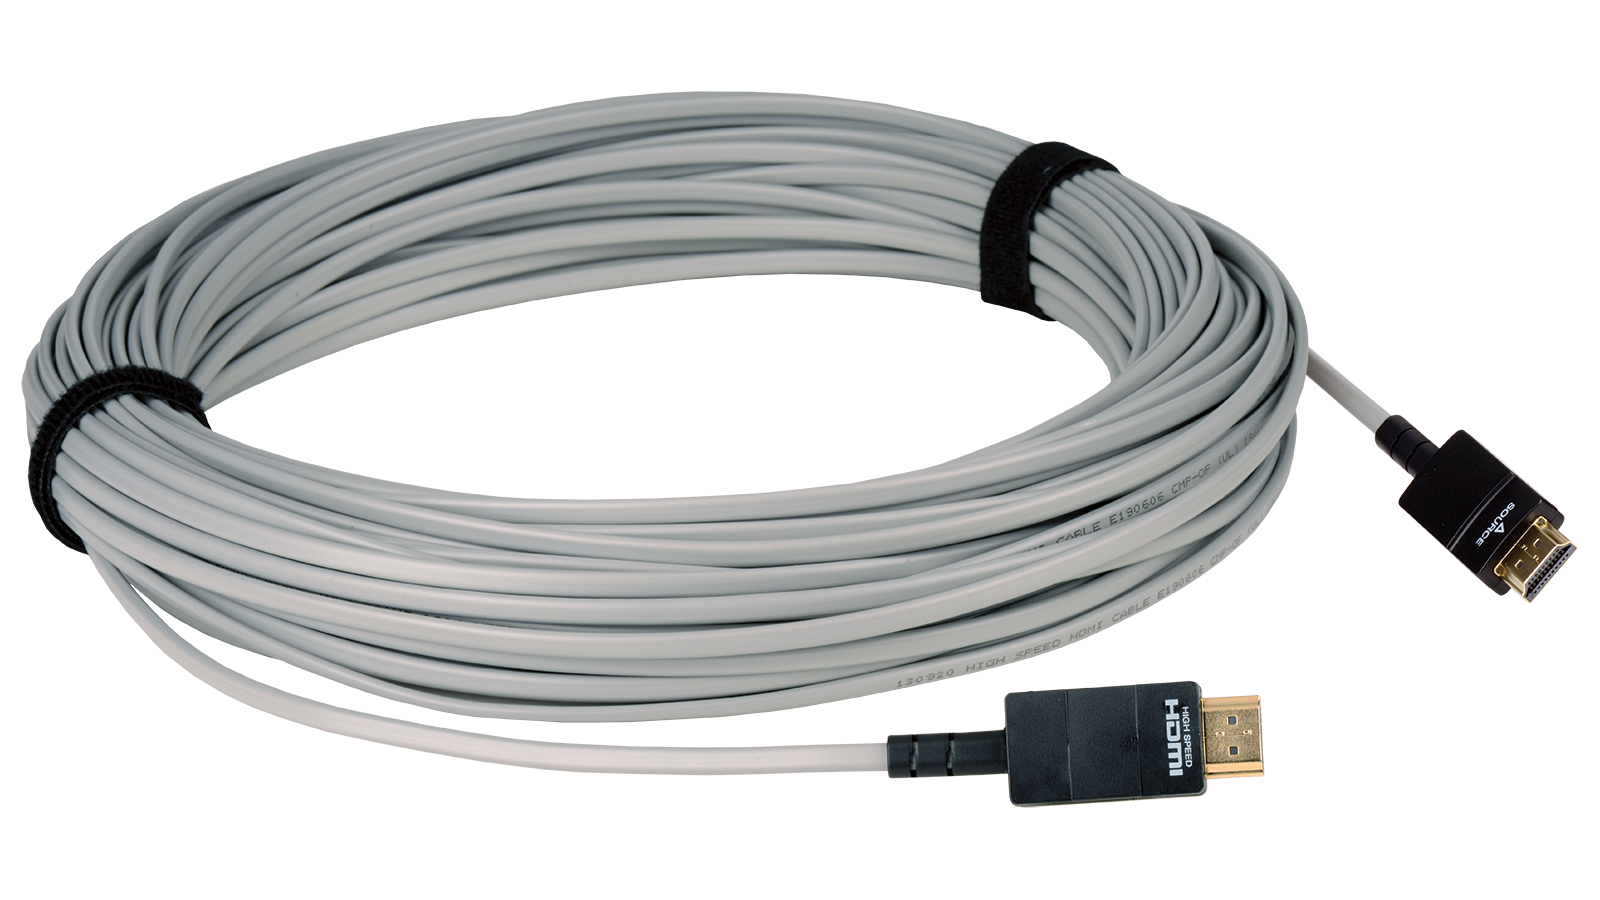 DL-AOCHP-010M - Liberty Plenum rated Hybrid Copper / Fiber Optic ...